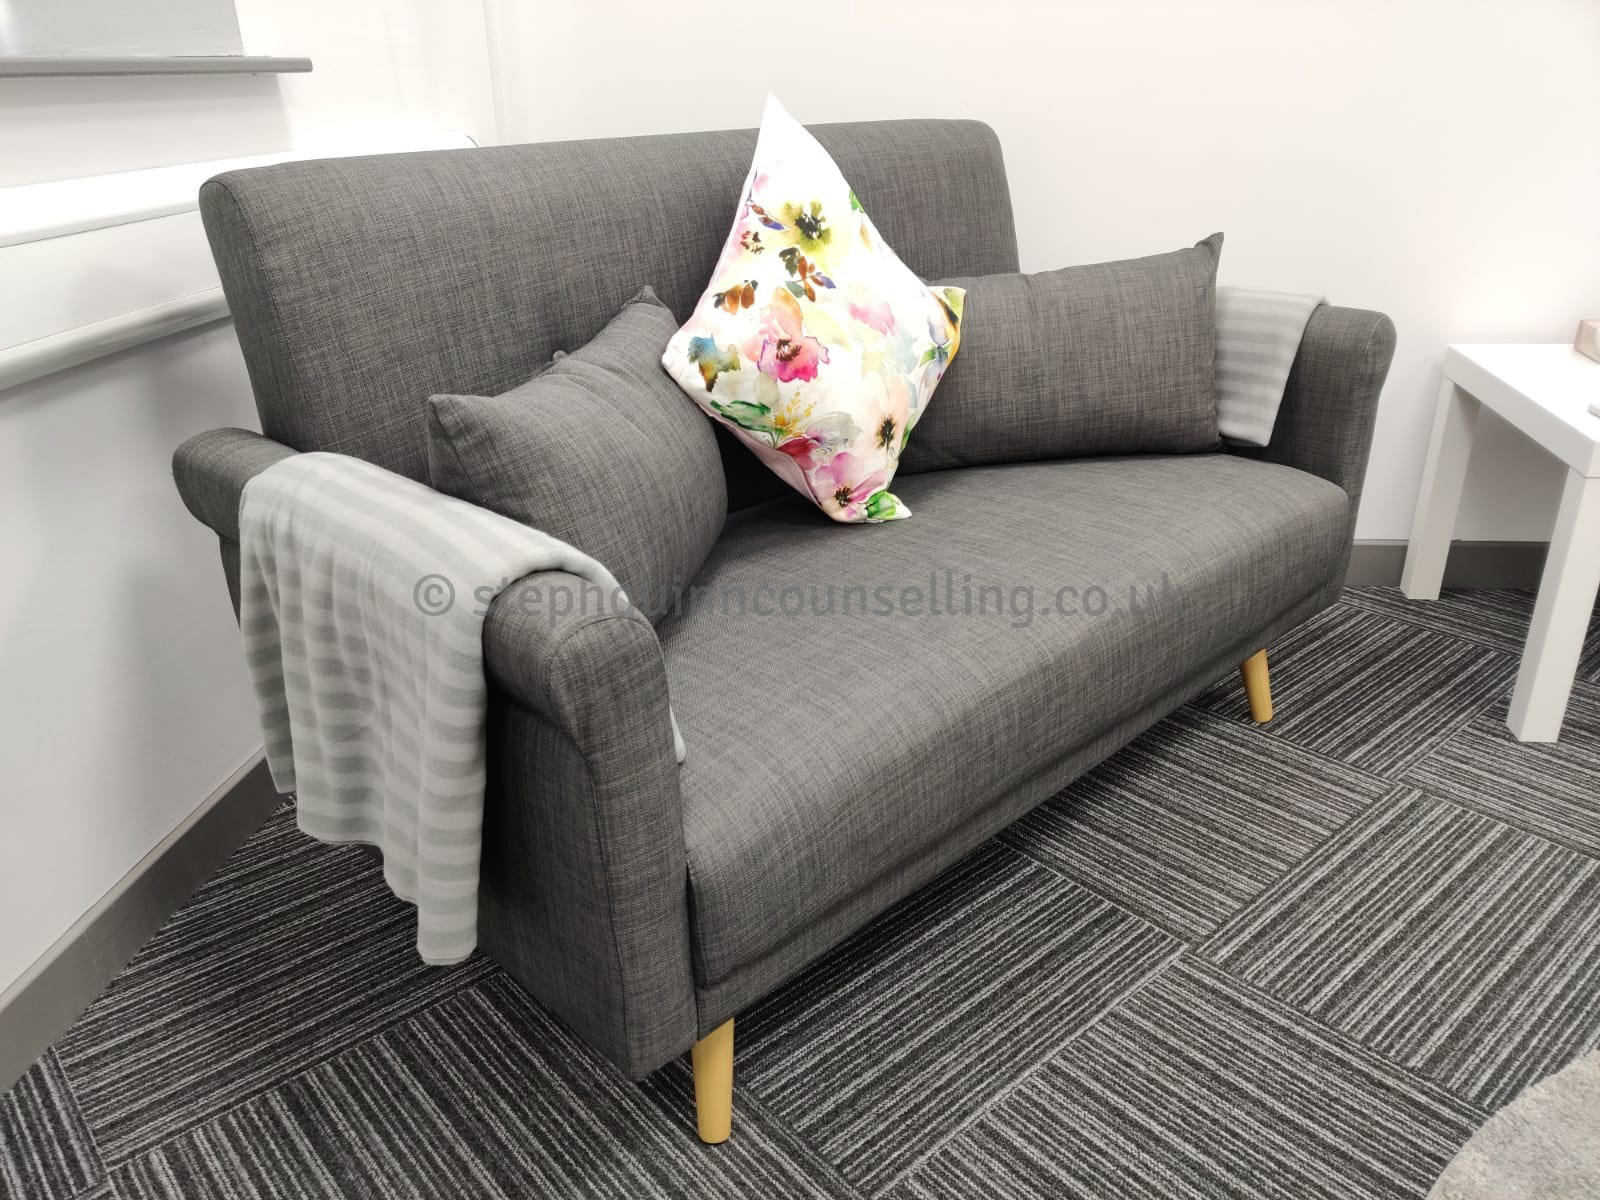 Counselling couch